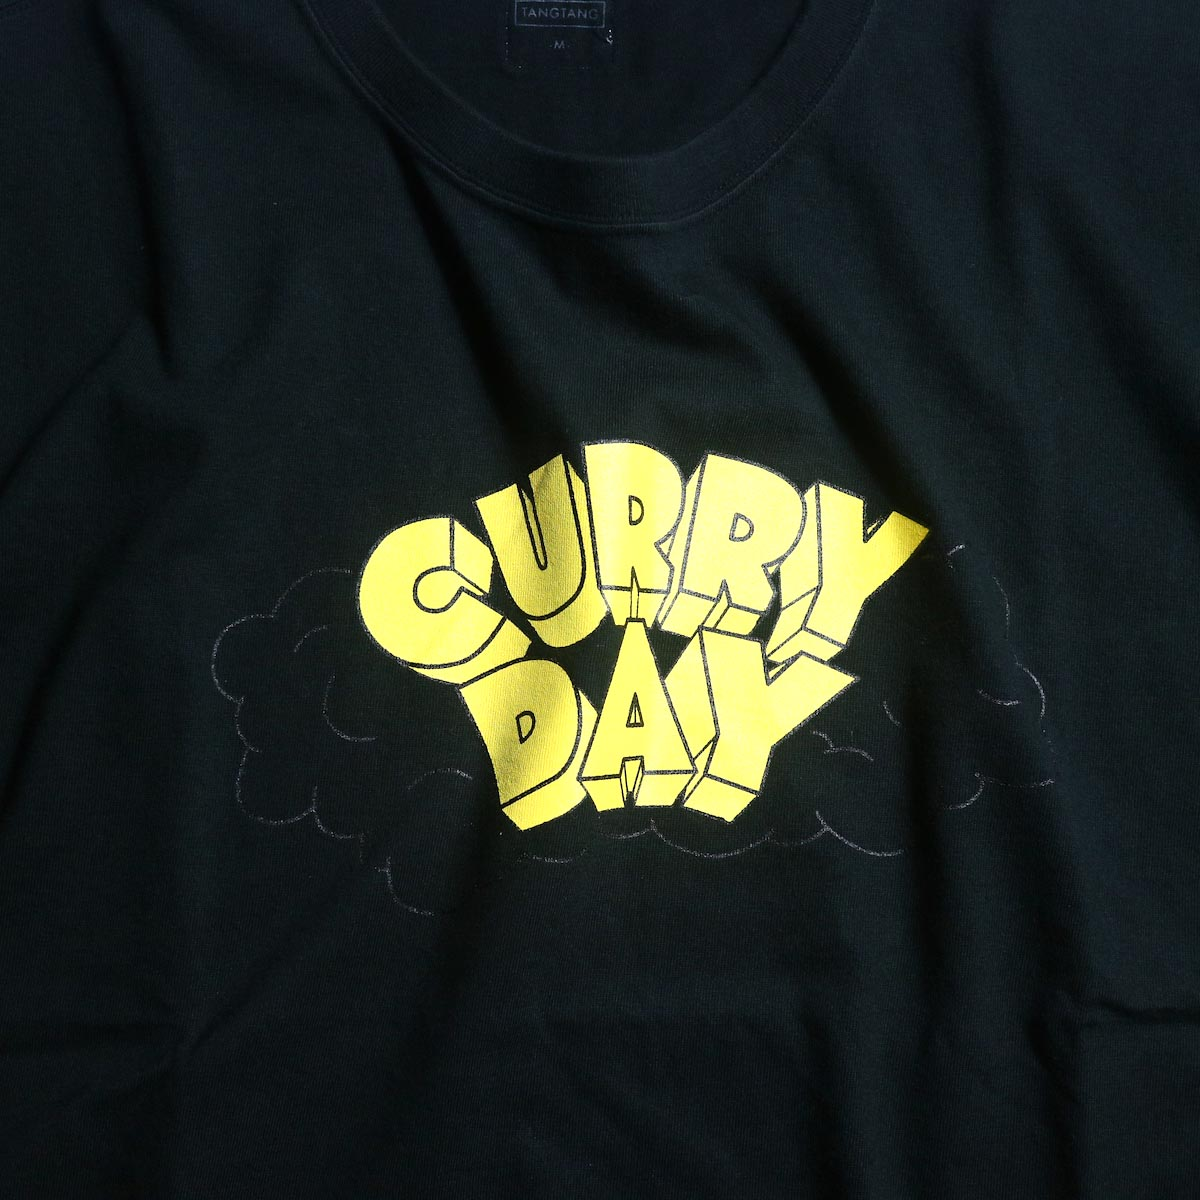 TANGTANG / CURRY -DAY (Black)ロゴ